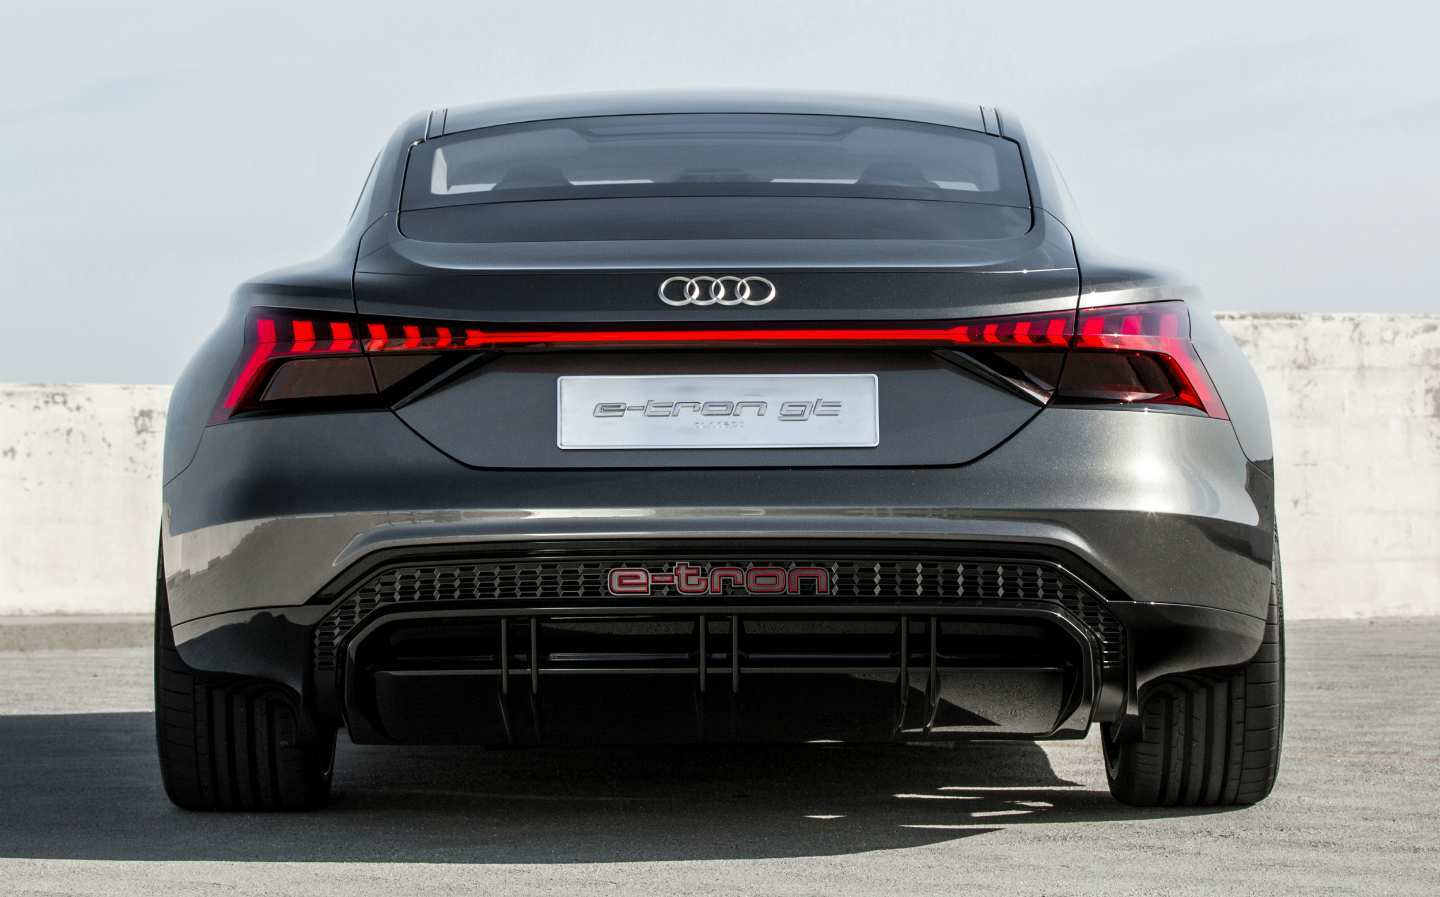 92 New 2020 Audi E Tron Gt Price Price And Review